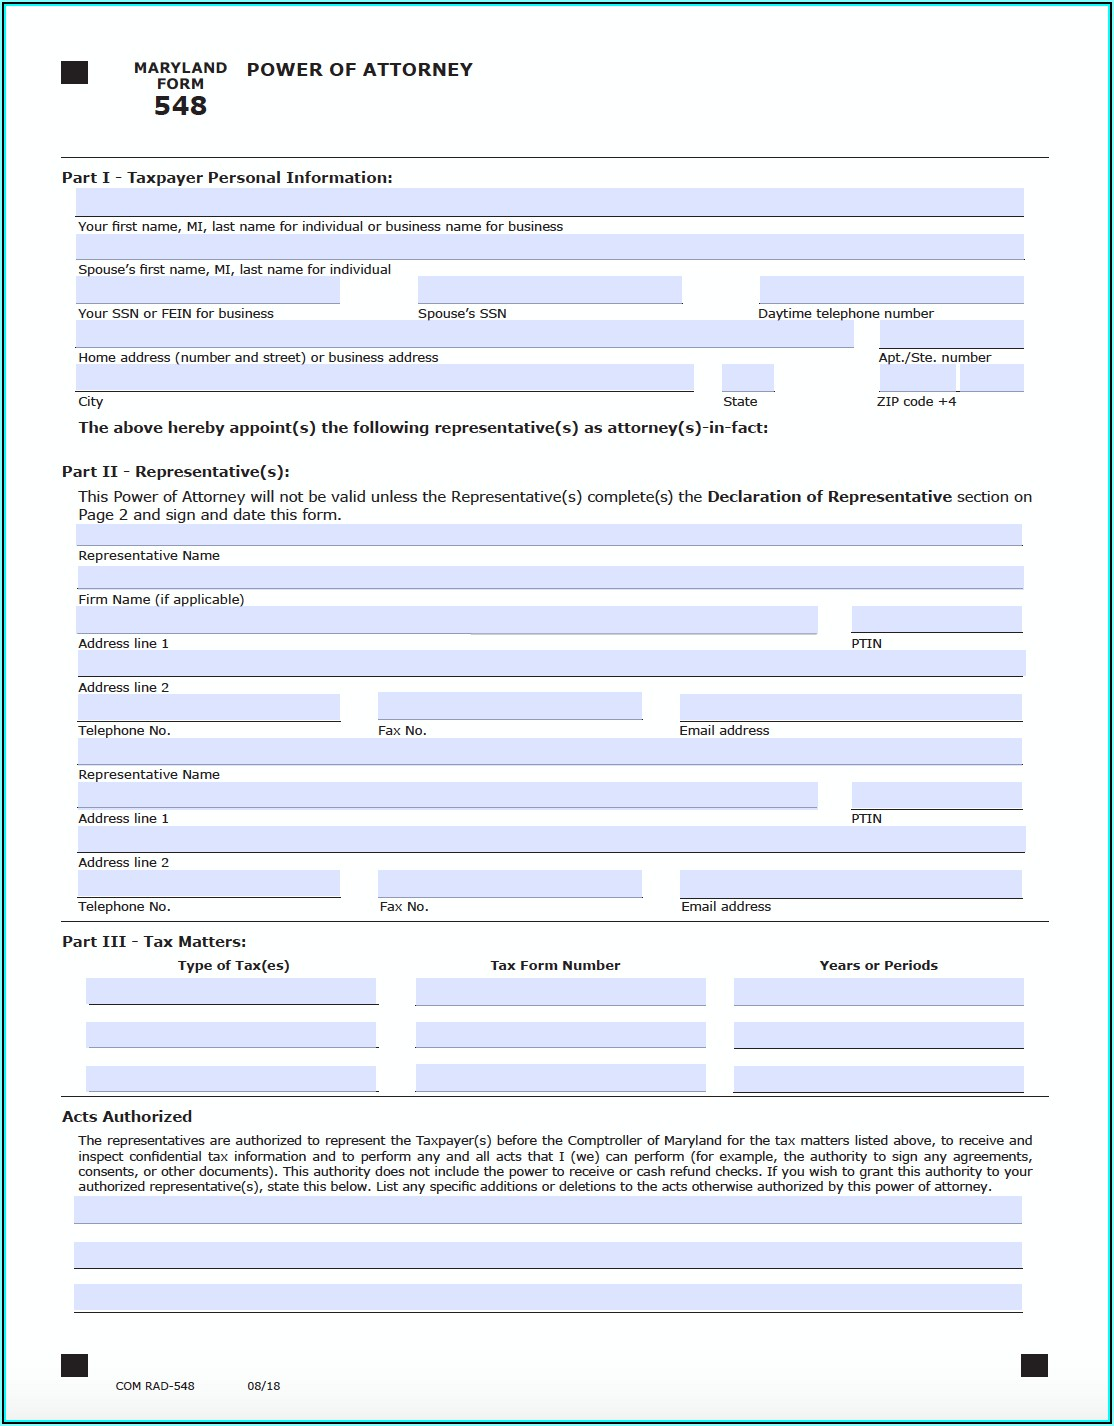 Maryland Power Of Attorney Form 548